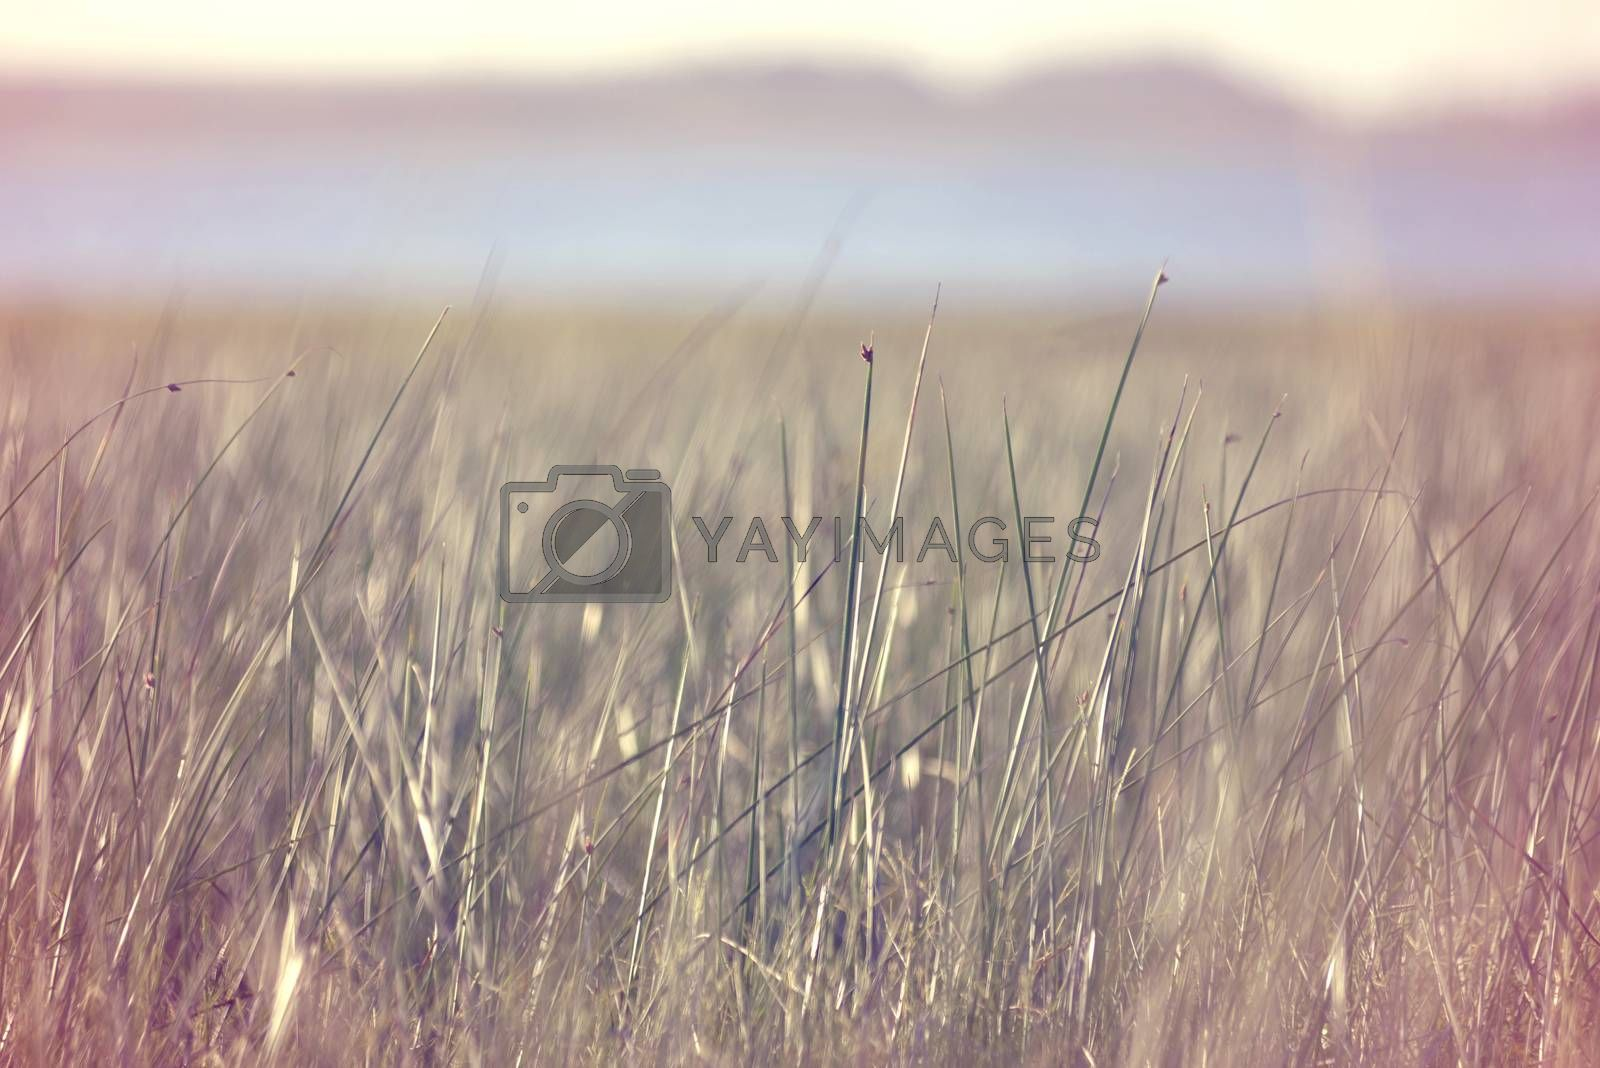 Peaceful view of grass meadow with water and clear sky in the background, blur effect and vintage hipster filter.